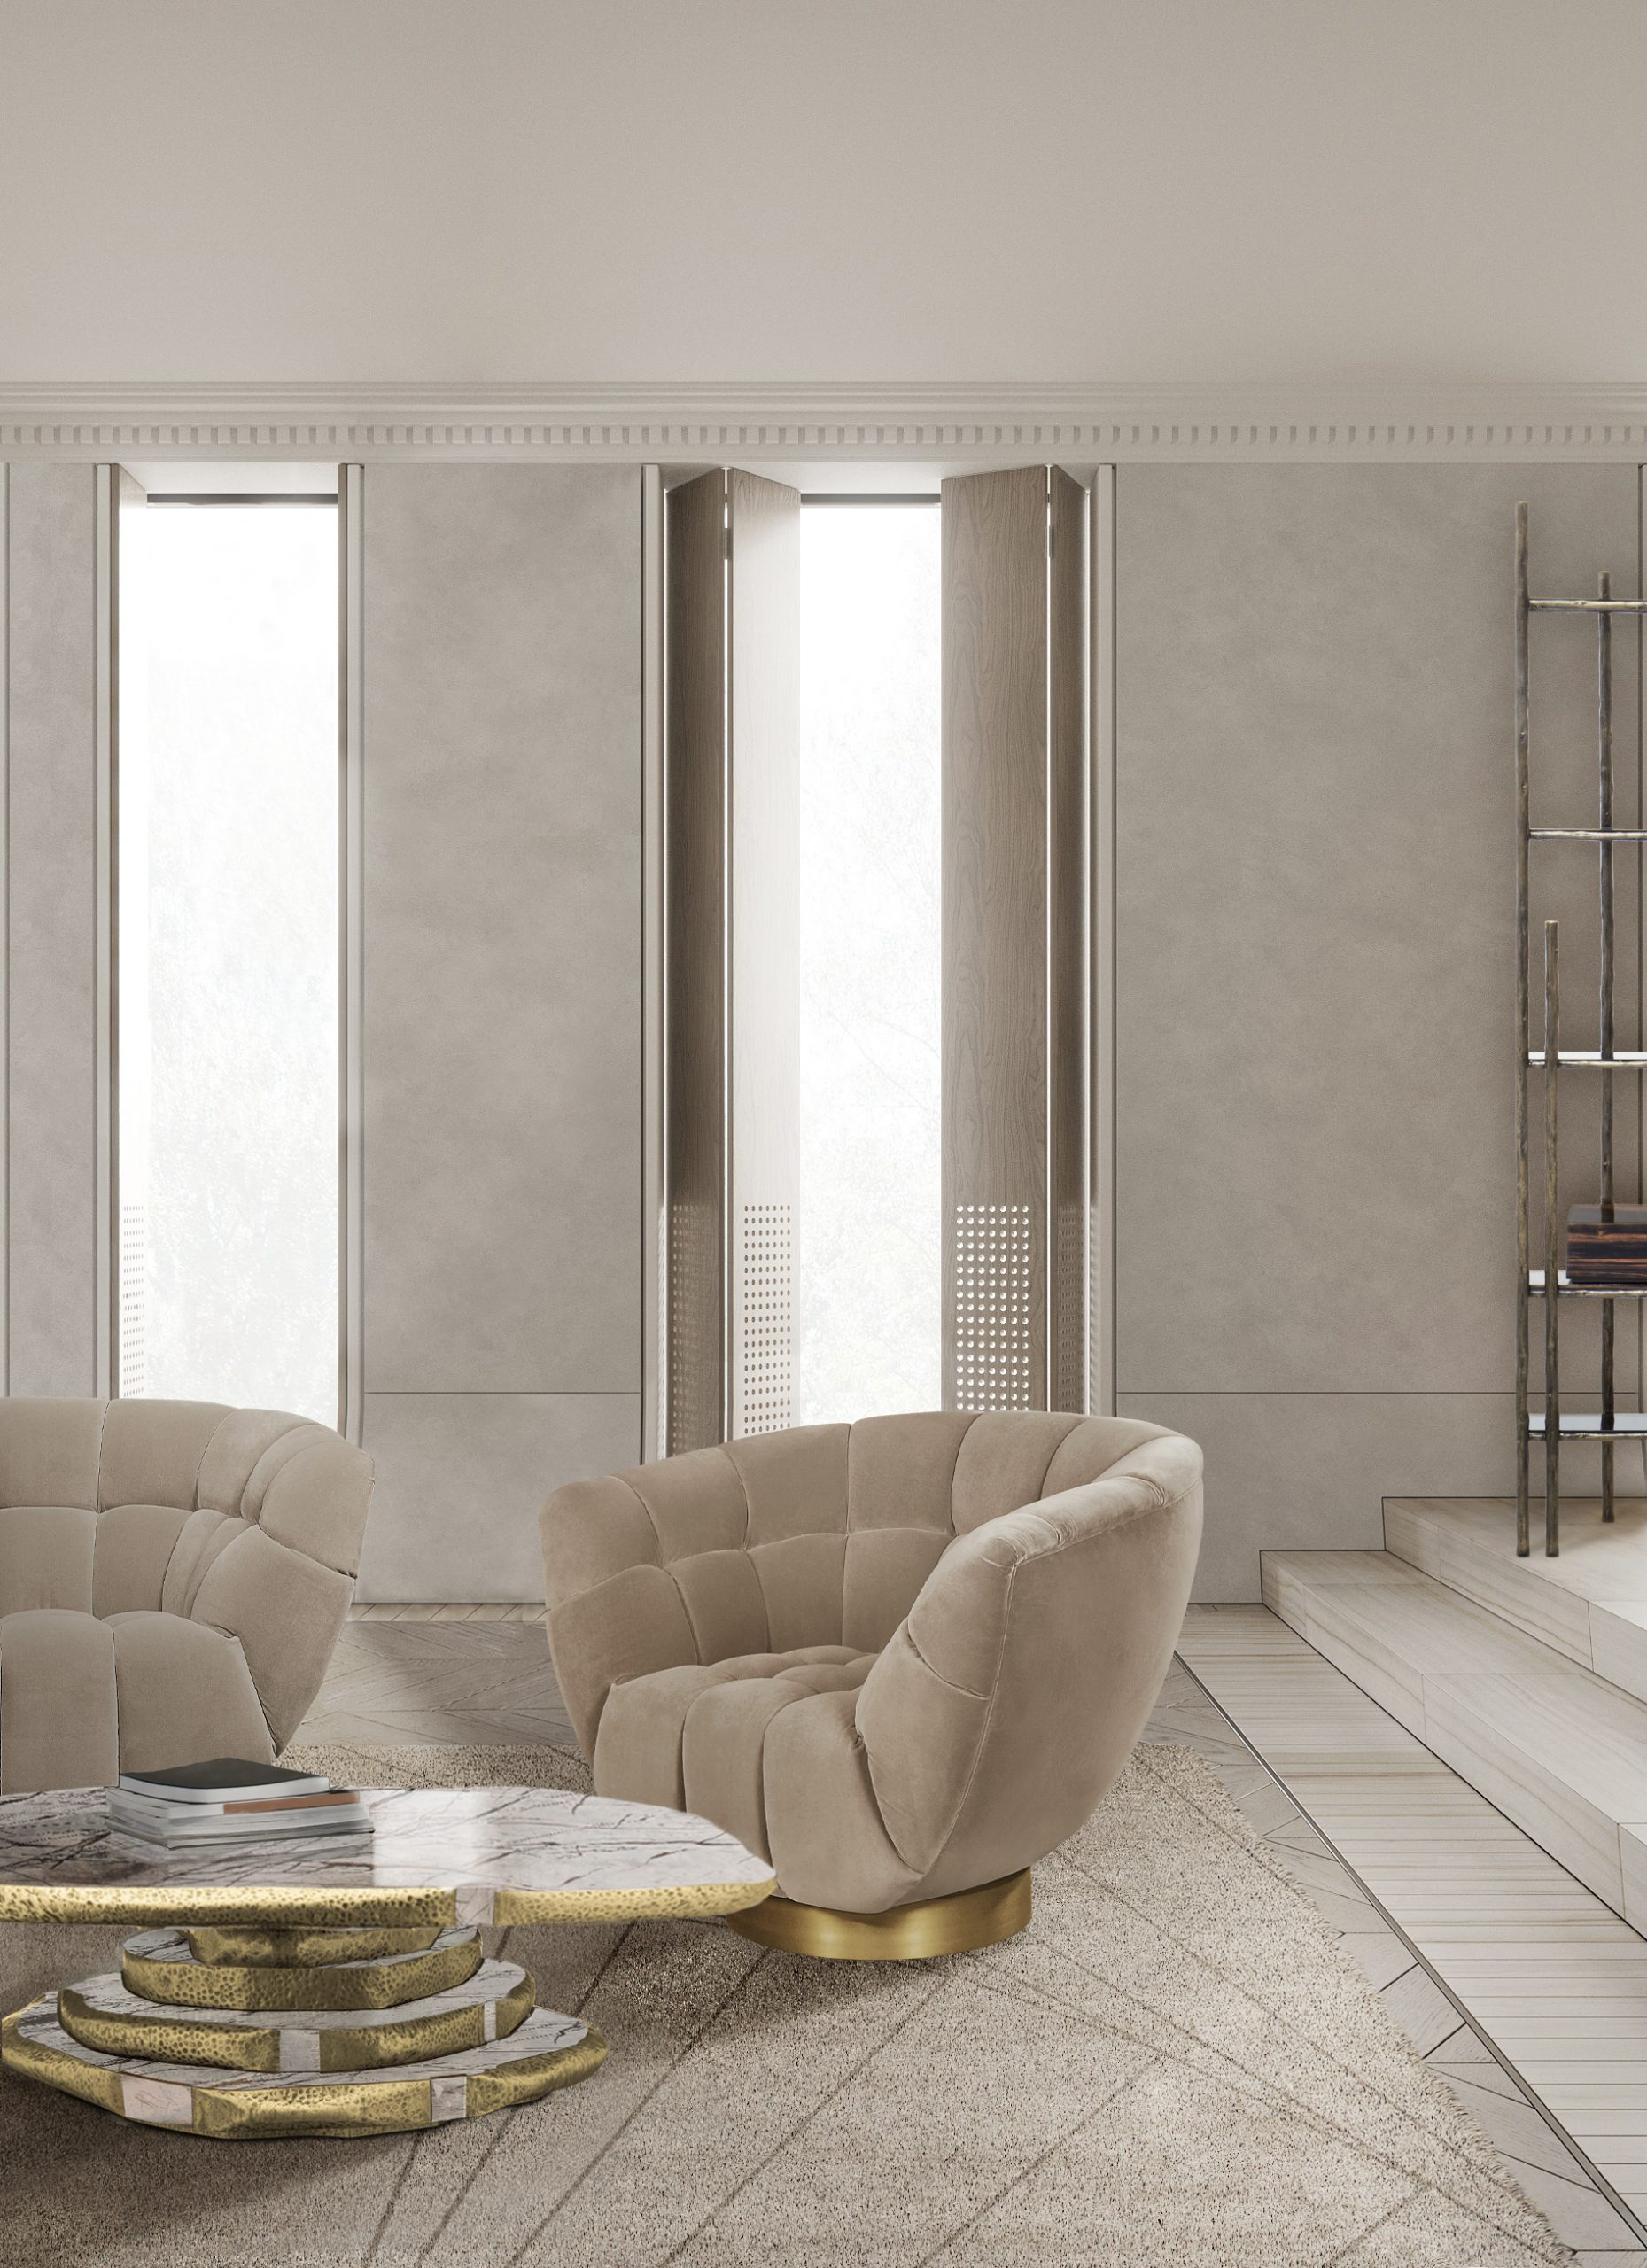 Monochromatic Look: How To Create Modern Rooms With One Colour monochromatic look Monochromatic Look: How To Create Modern Rooms With One Colour essex armchair latza center marble scaled